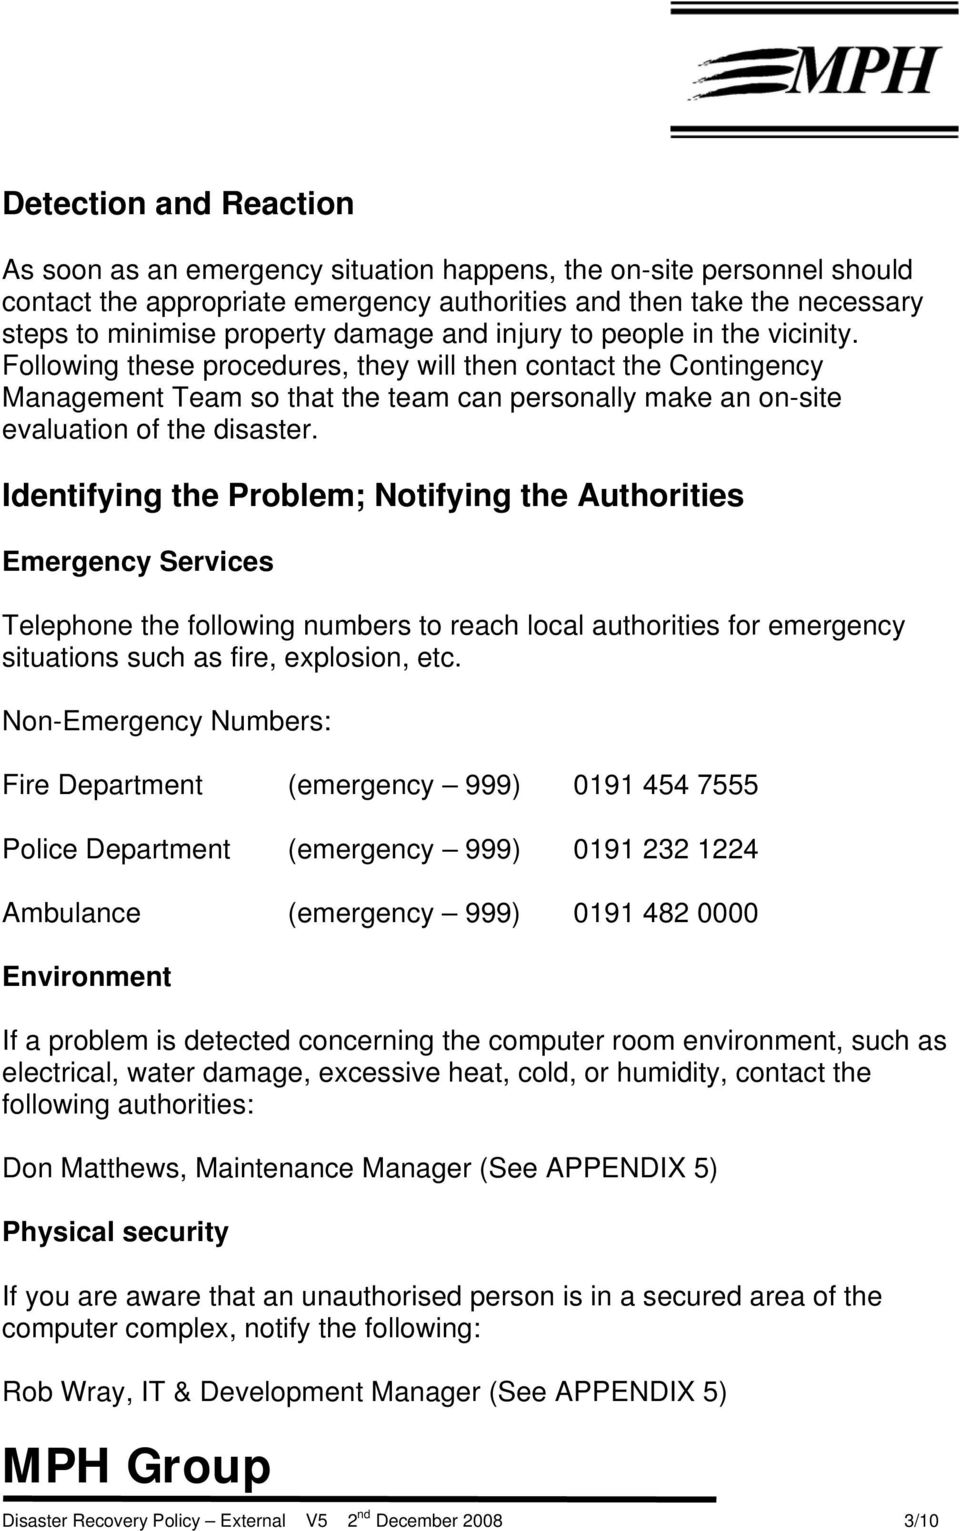 Following these procedures, they will then contact the Contingency Management Team so that the team can personally make an on-site evaluation of the disaster.